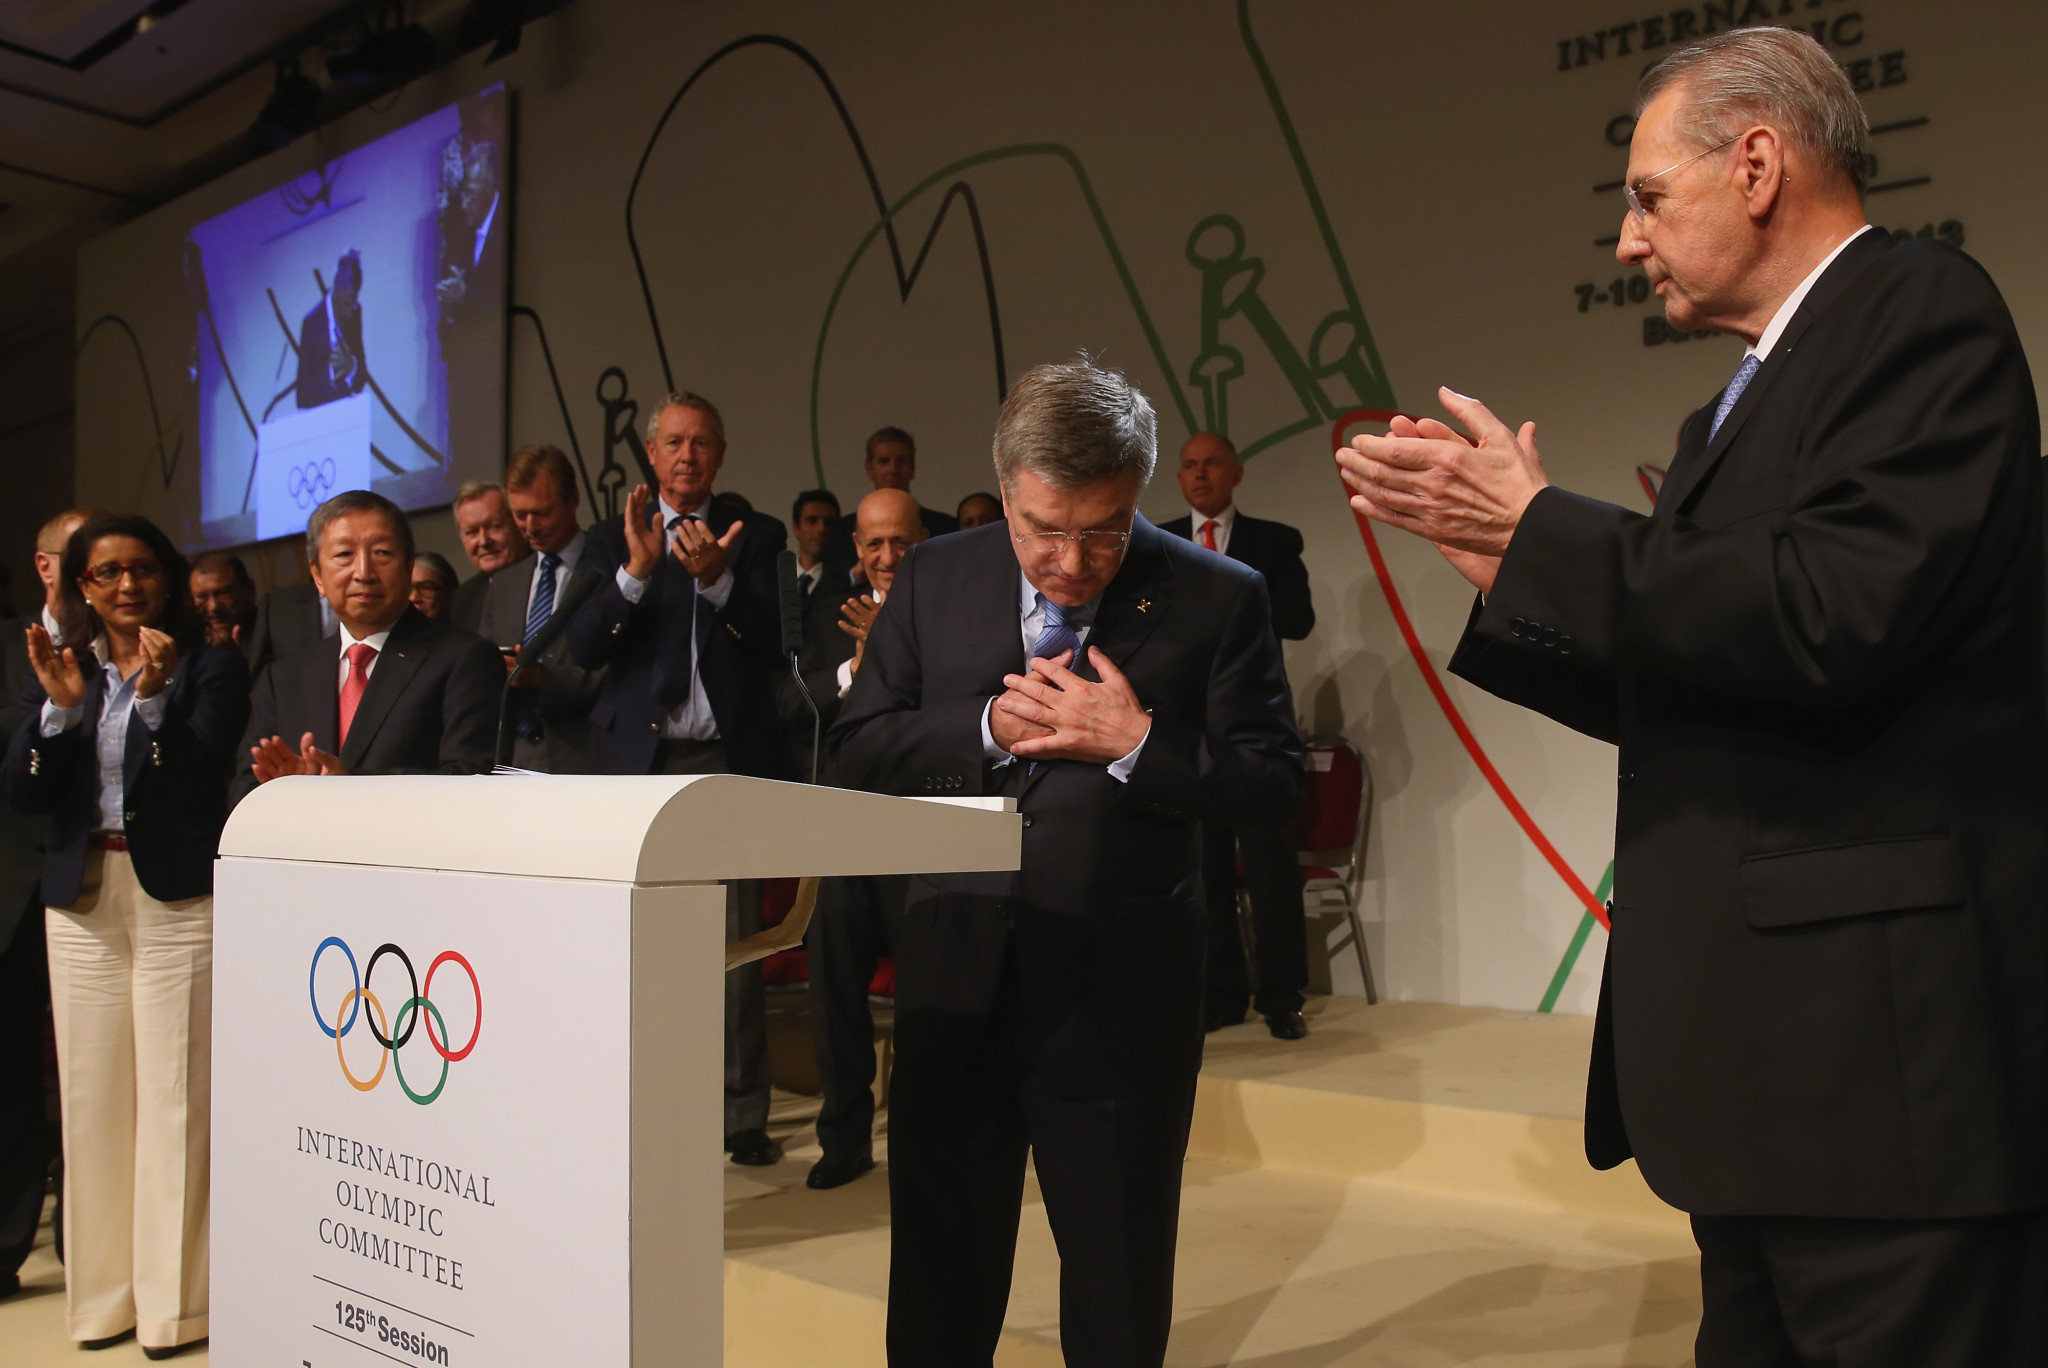 Thomas Bach accepts the congratulations after being elected President at the IOC Session in Buenos Aires ©Getty Images